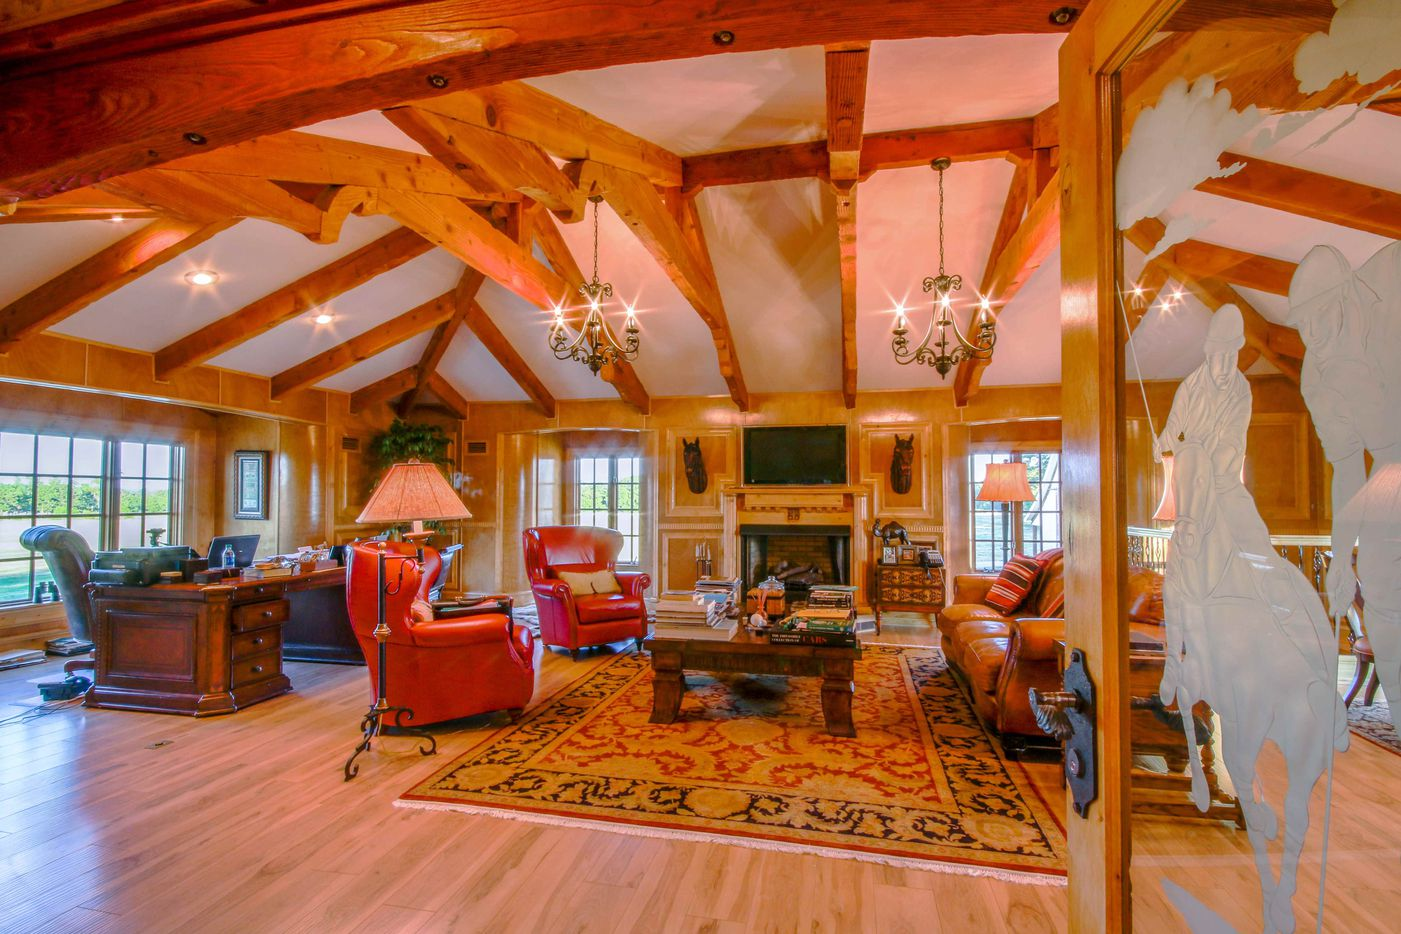 The main house is about 3,800 square feet.